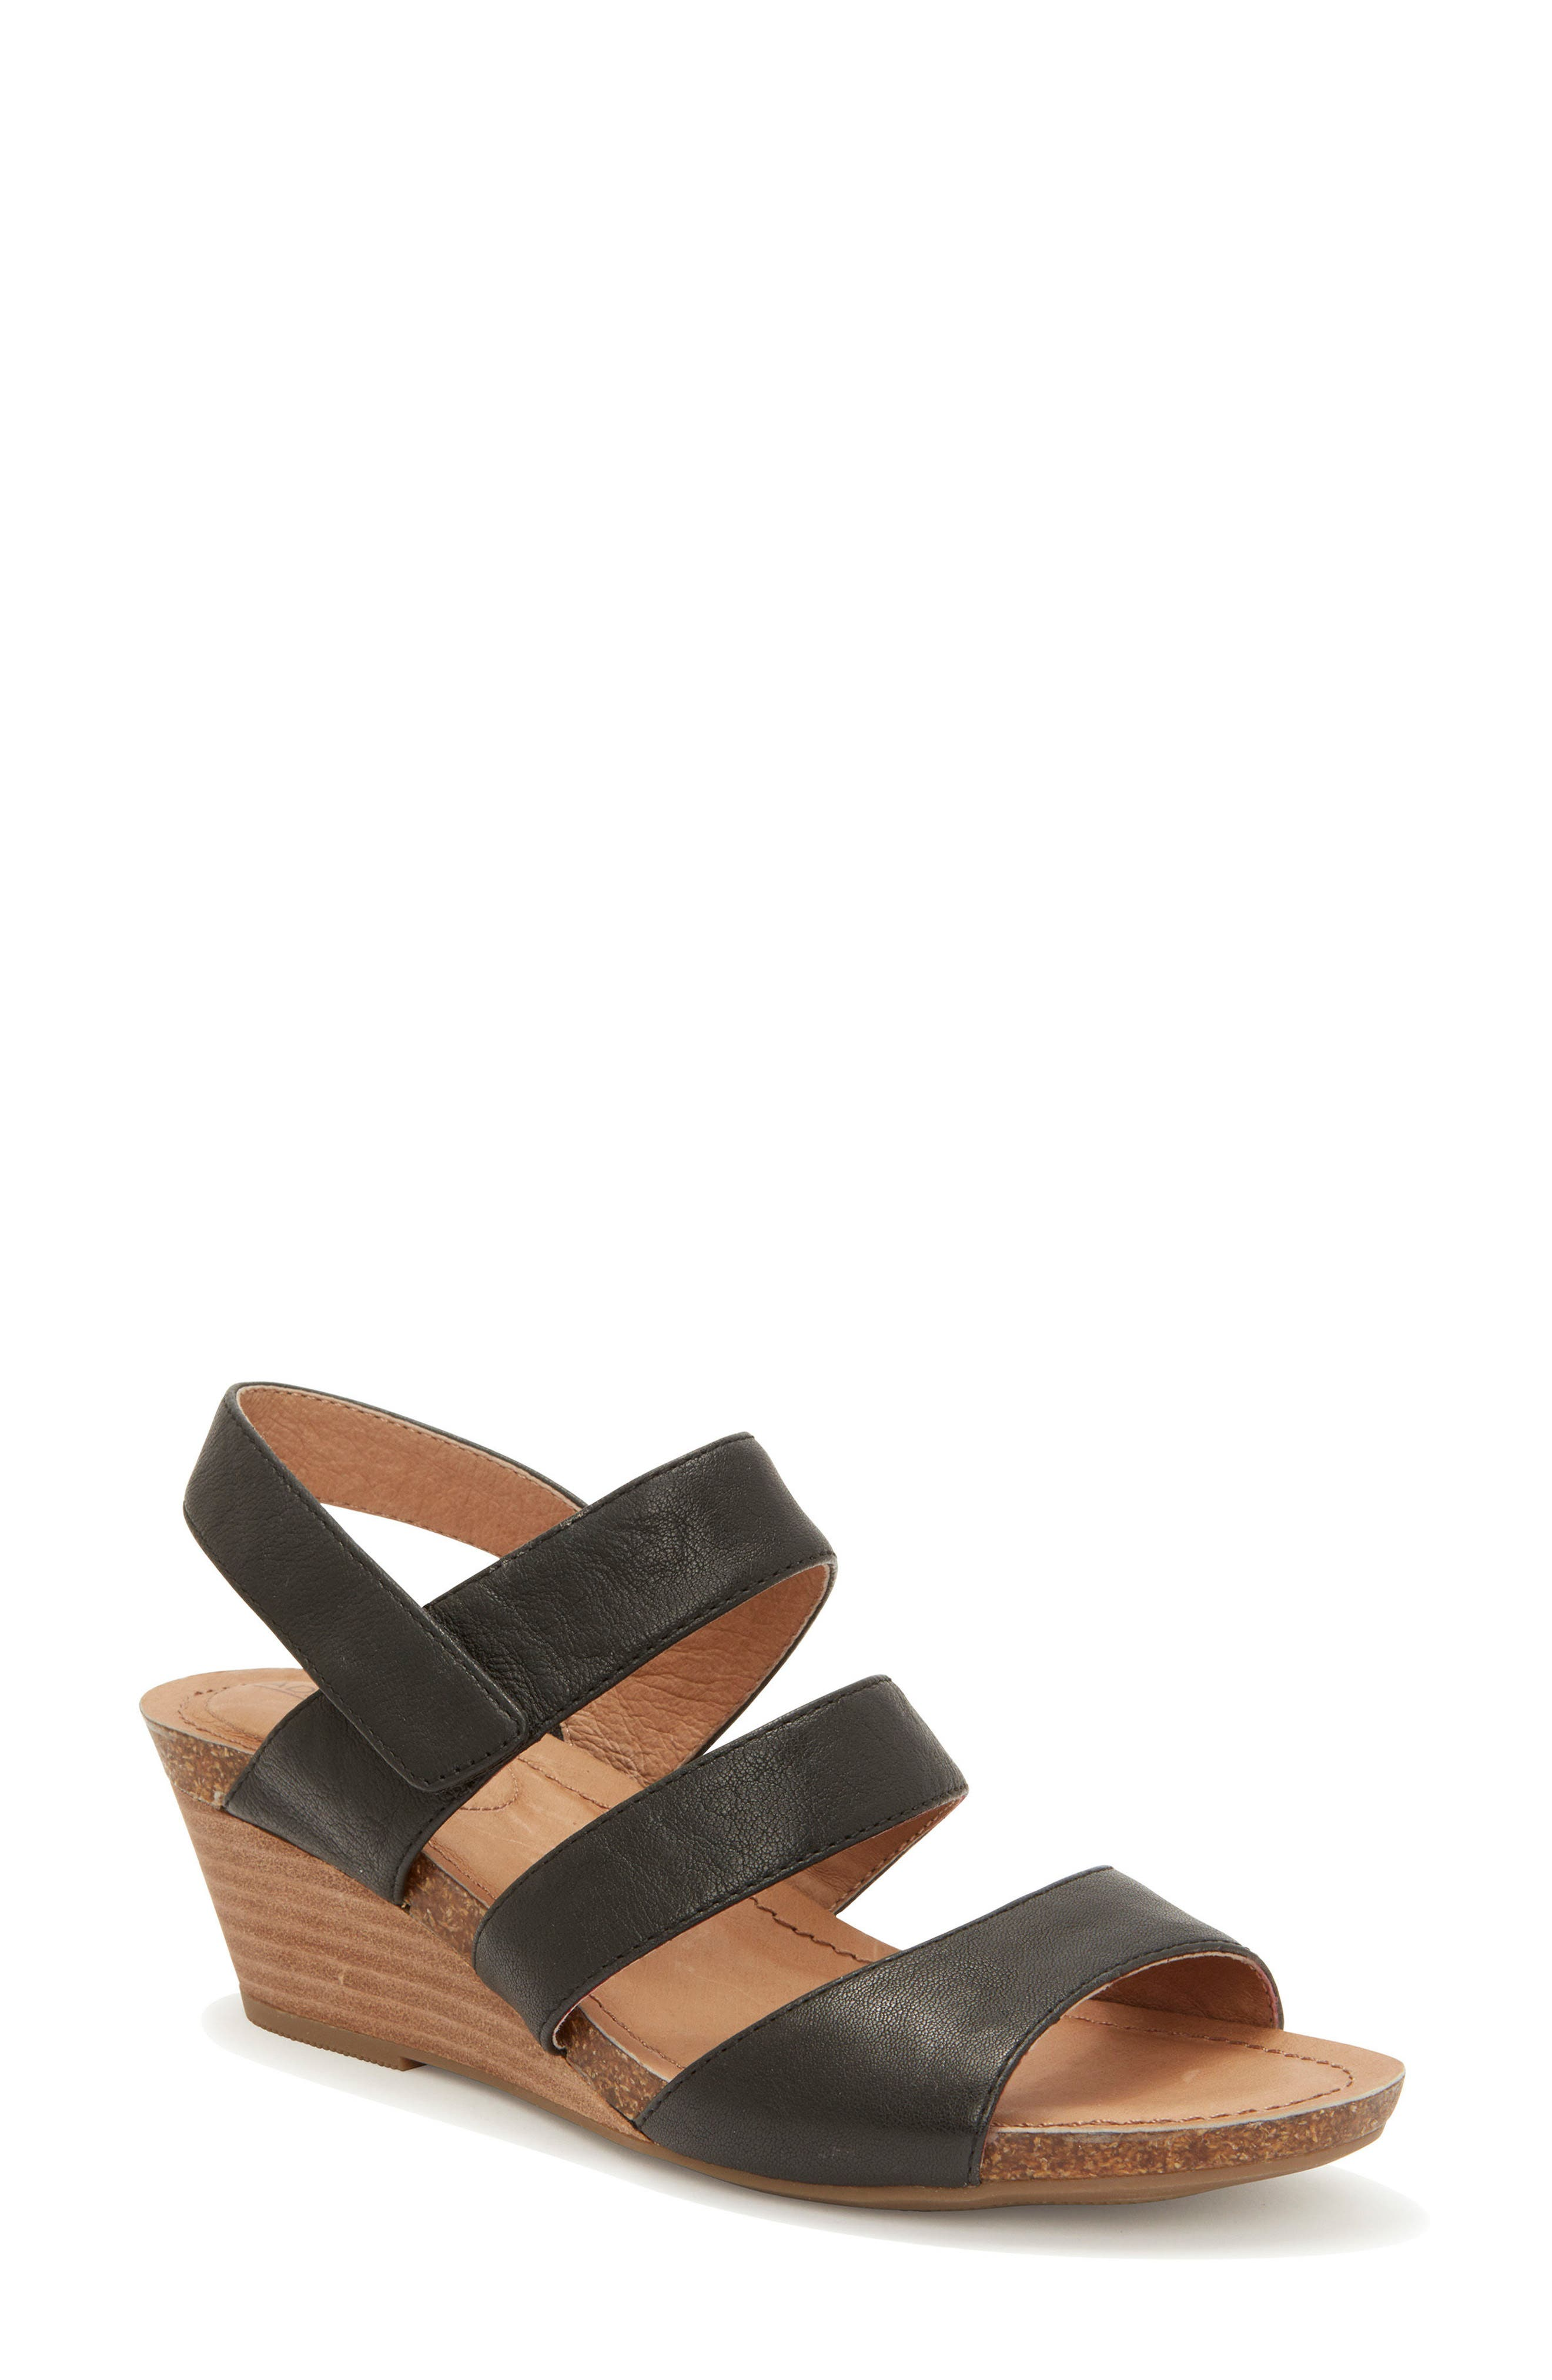 Adam Tucker Tora Wedge Sandal,                             Main thumbnail 1, color,